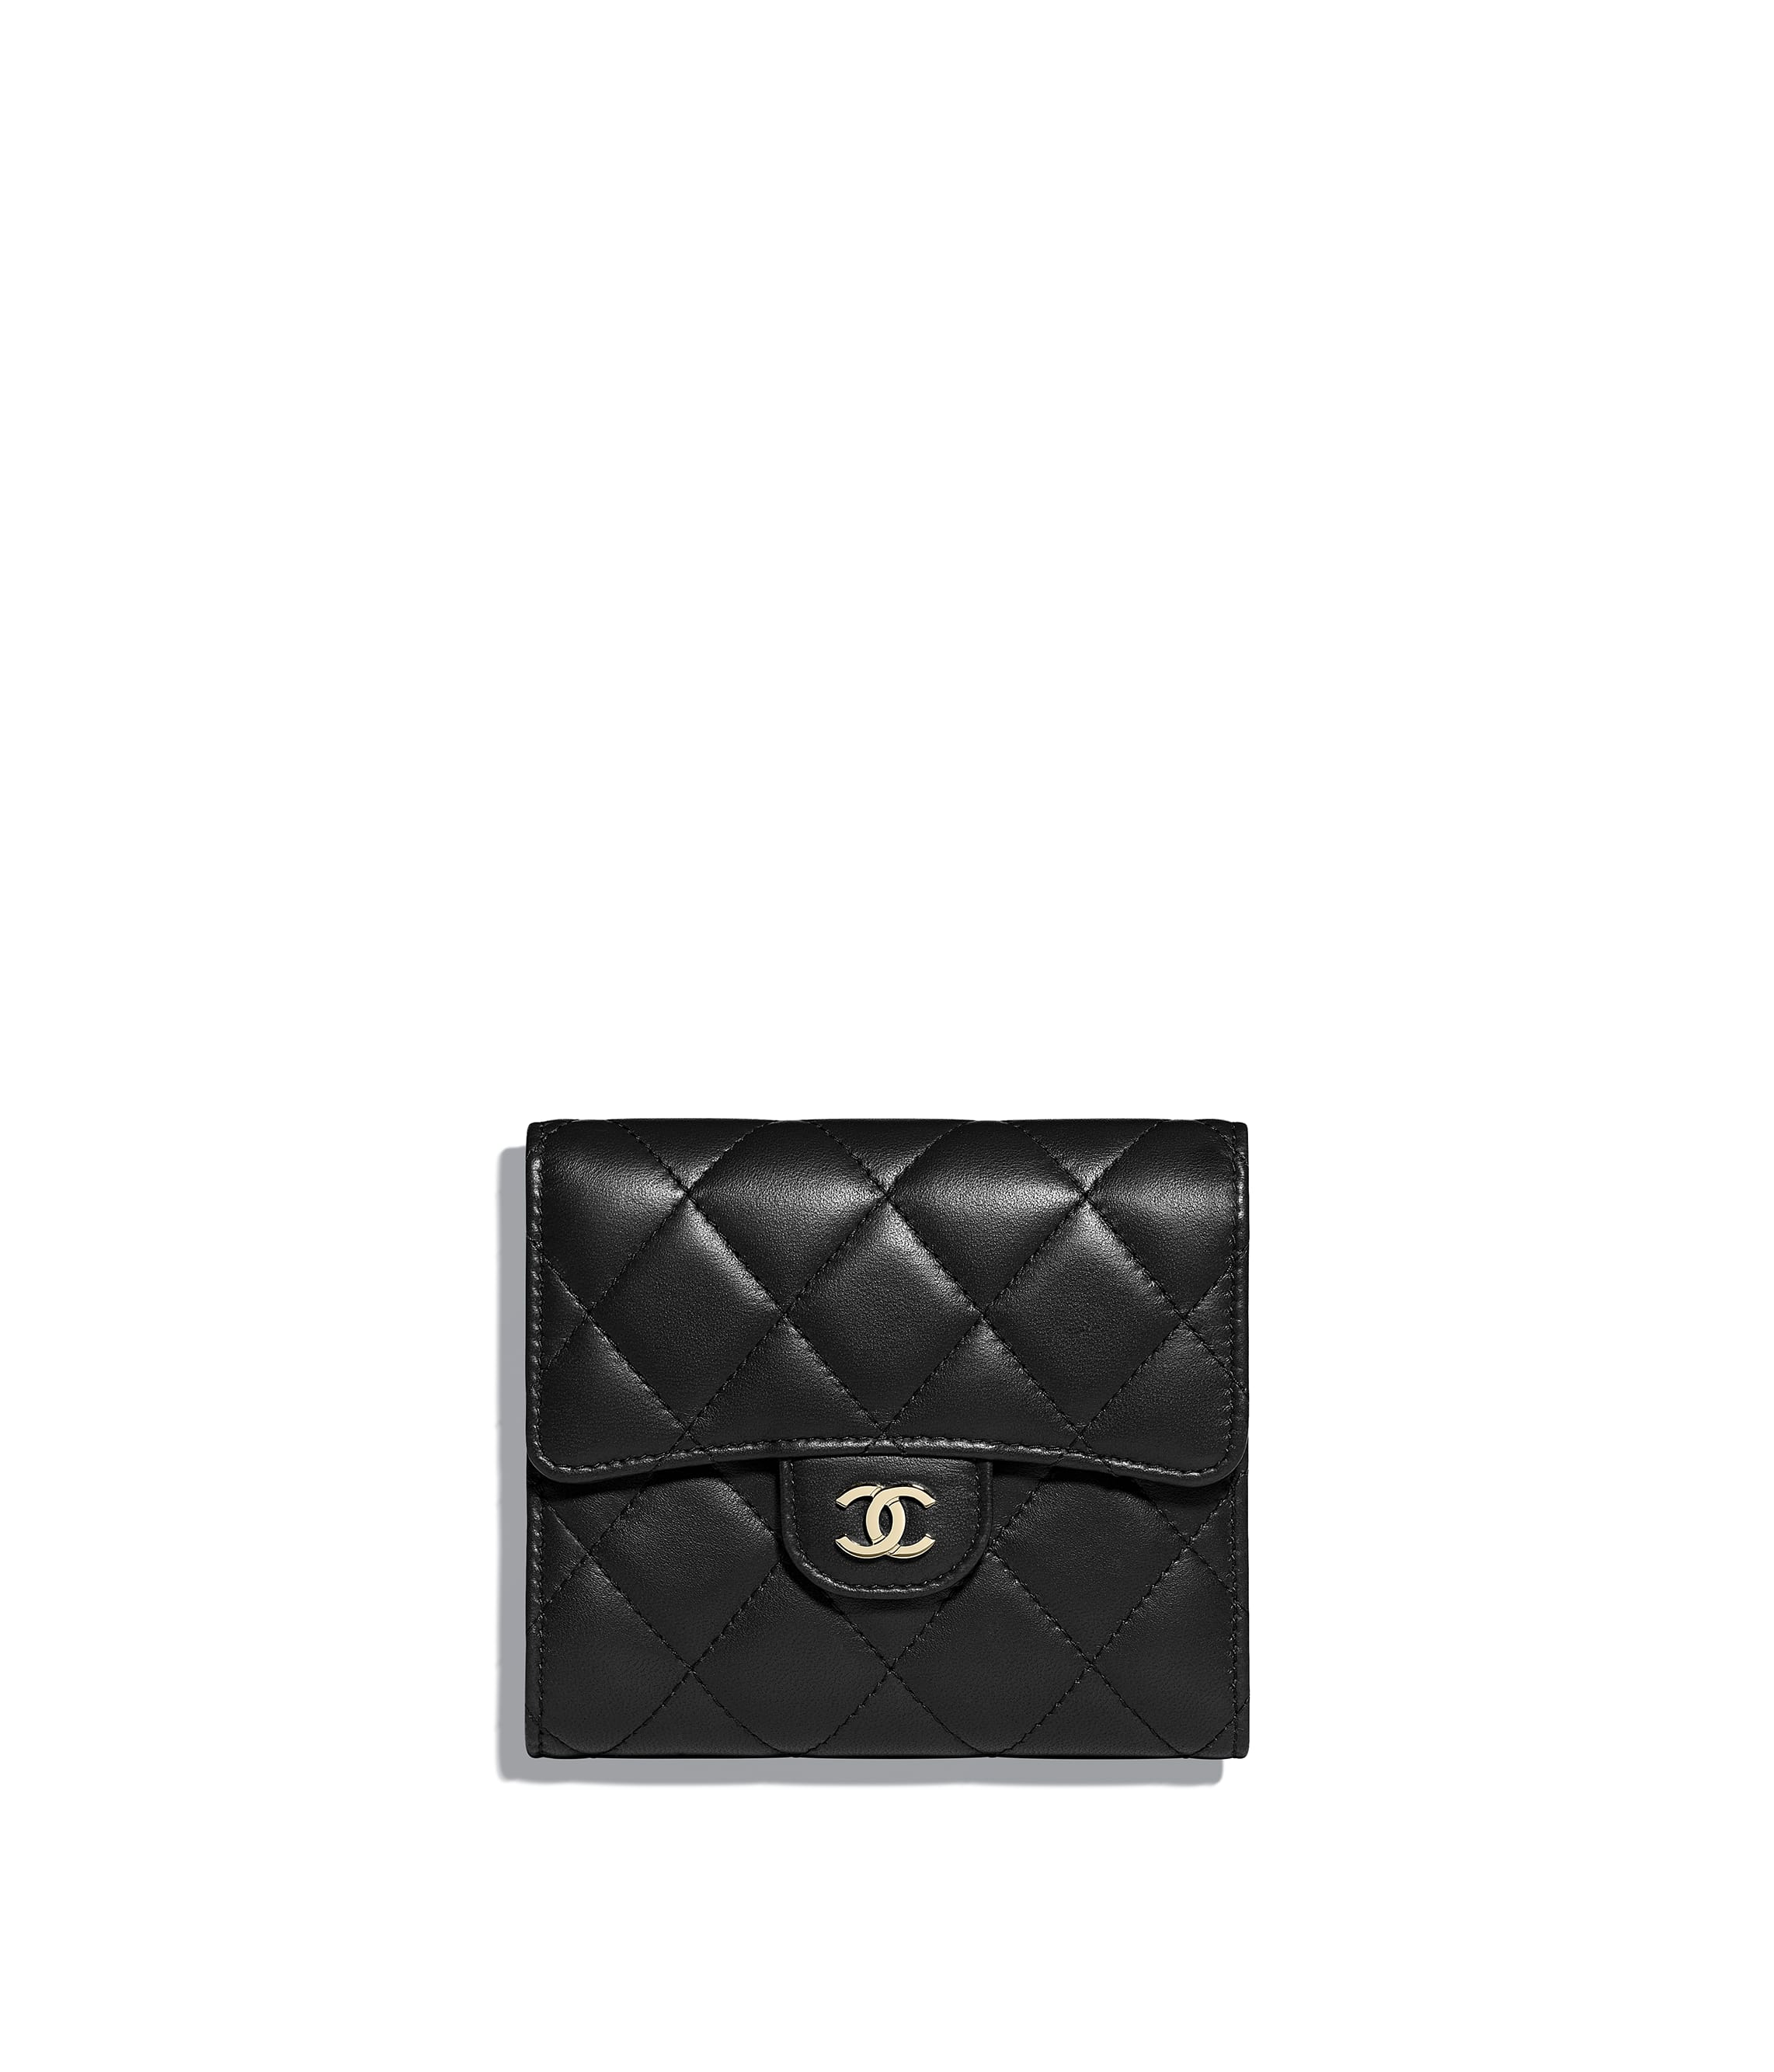 bad800148a2199 Classic Small Flap Wallet, lambskin & gold-tone metal, black - CHANEL